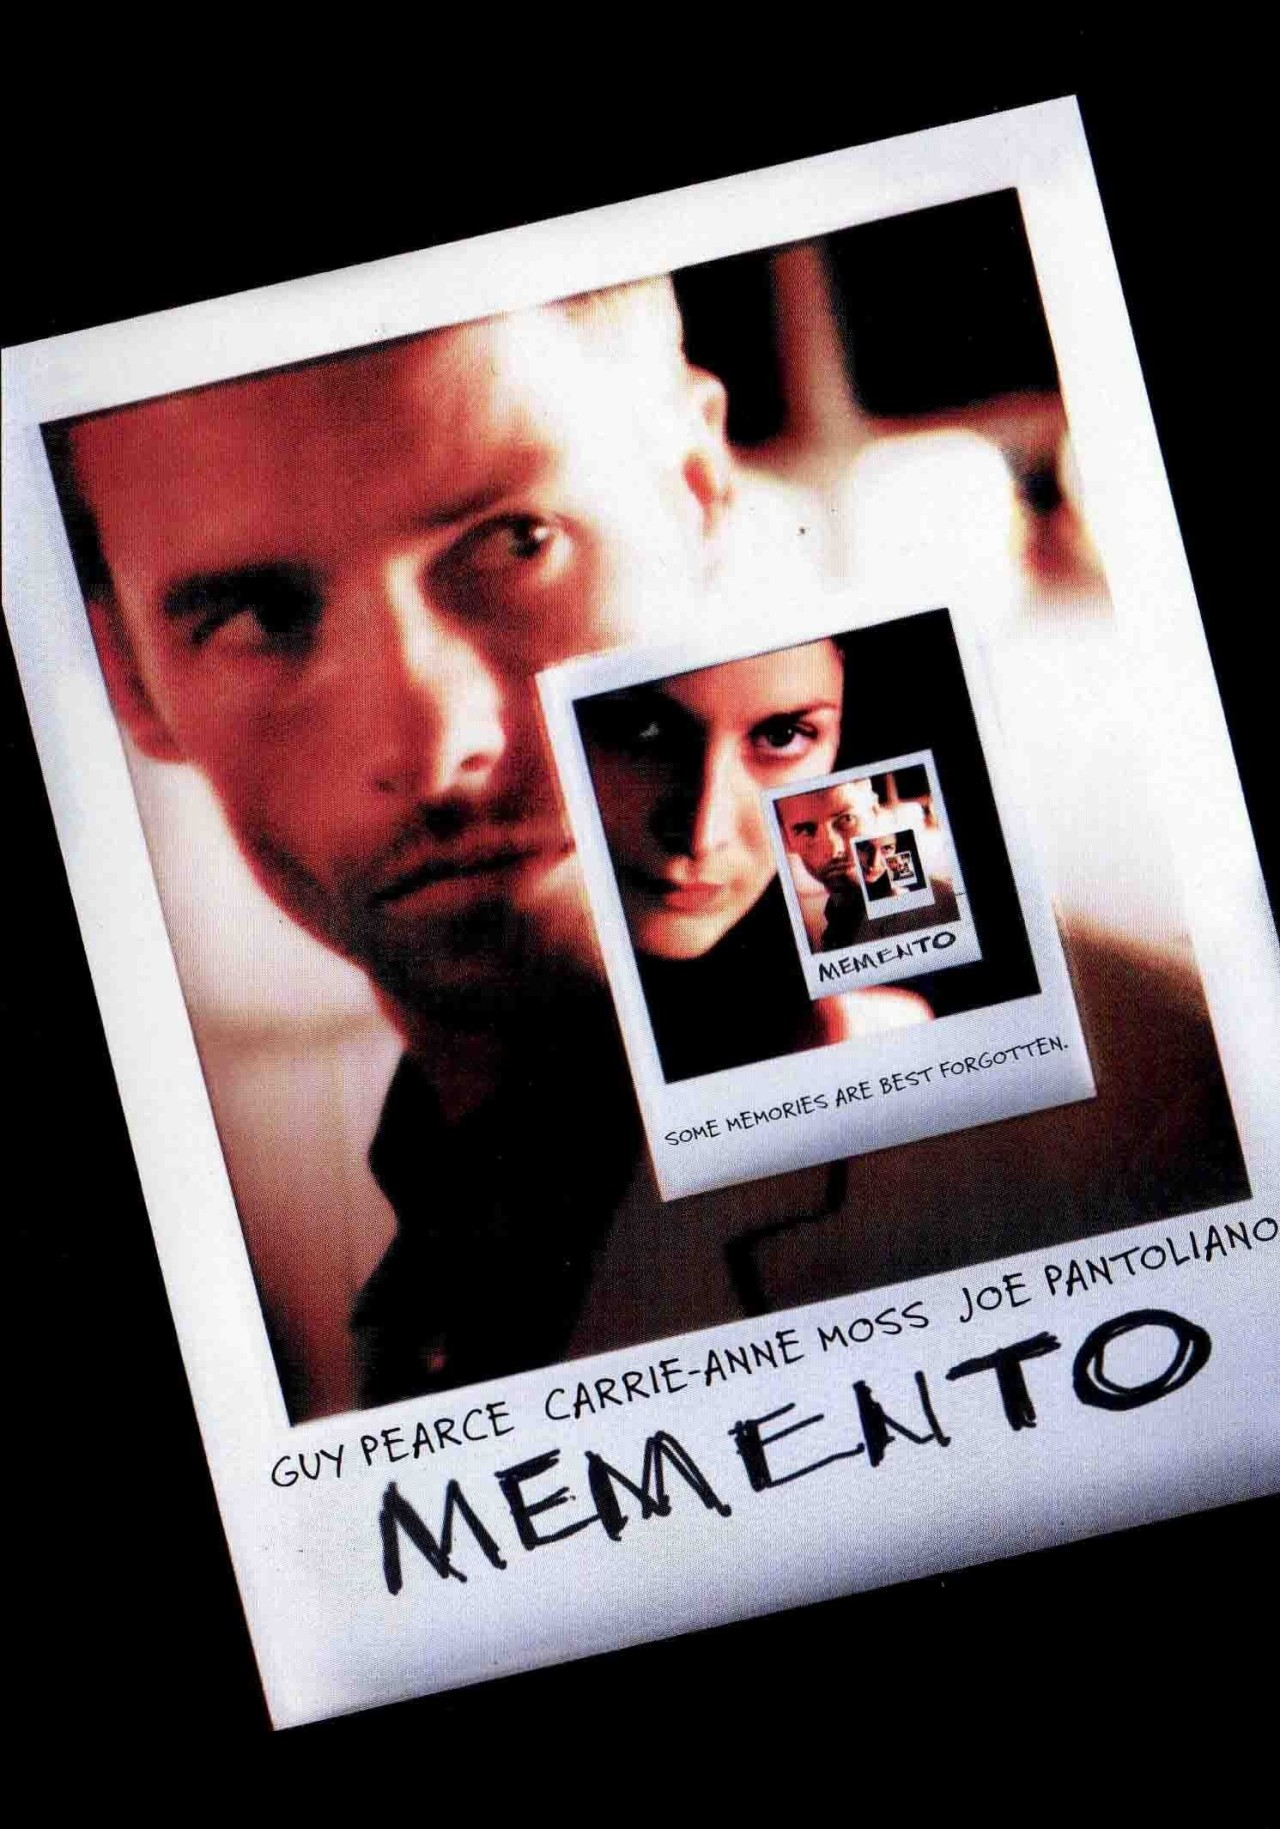 alternative-imagery:  Memento